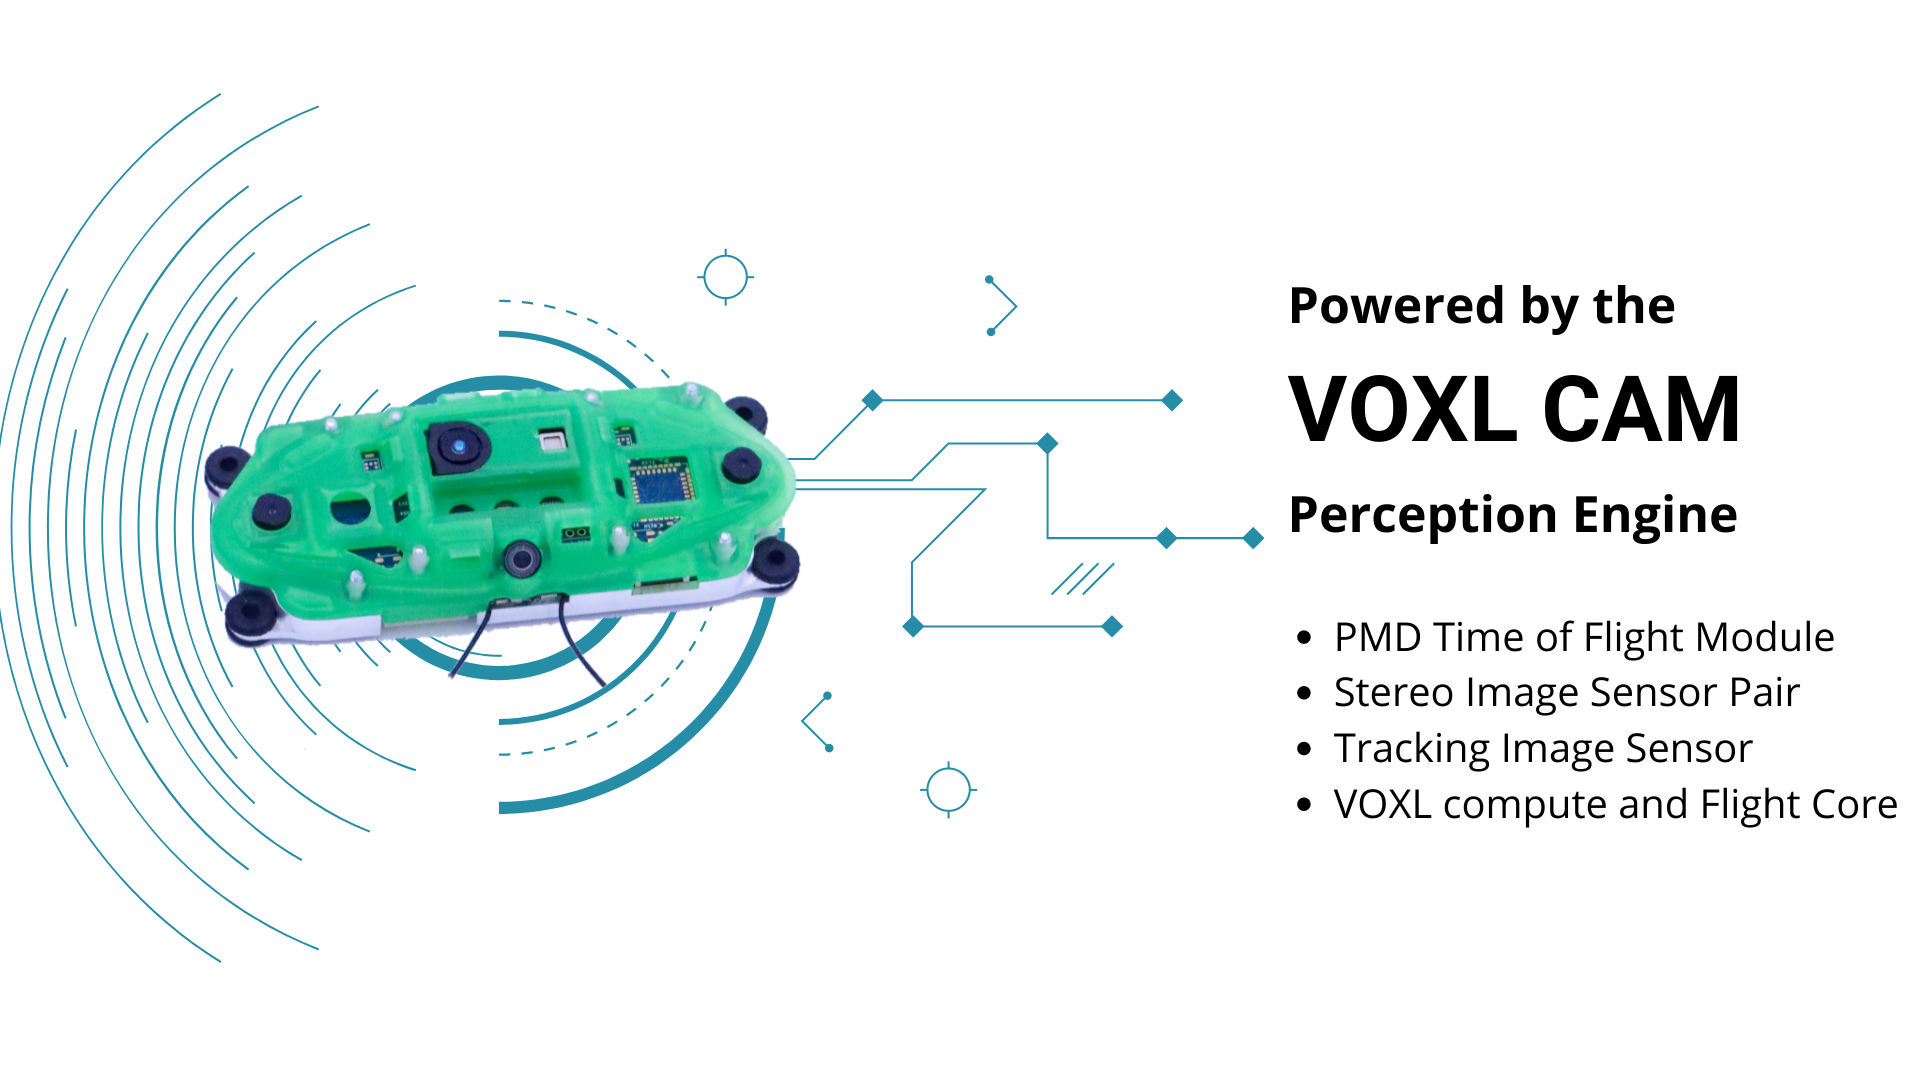 POwered by the VOXL CAM perception engine. -PMD time of flight module - stereo image sensor pair - tracking image sensor - VOXL compute and Flight Core